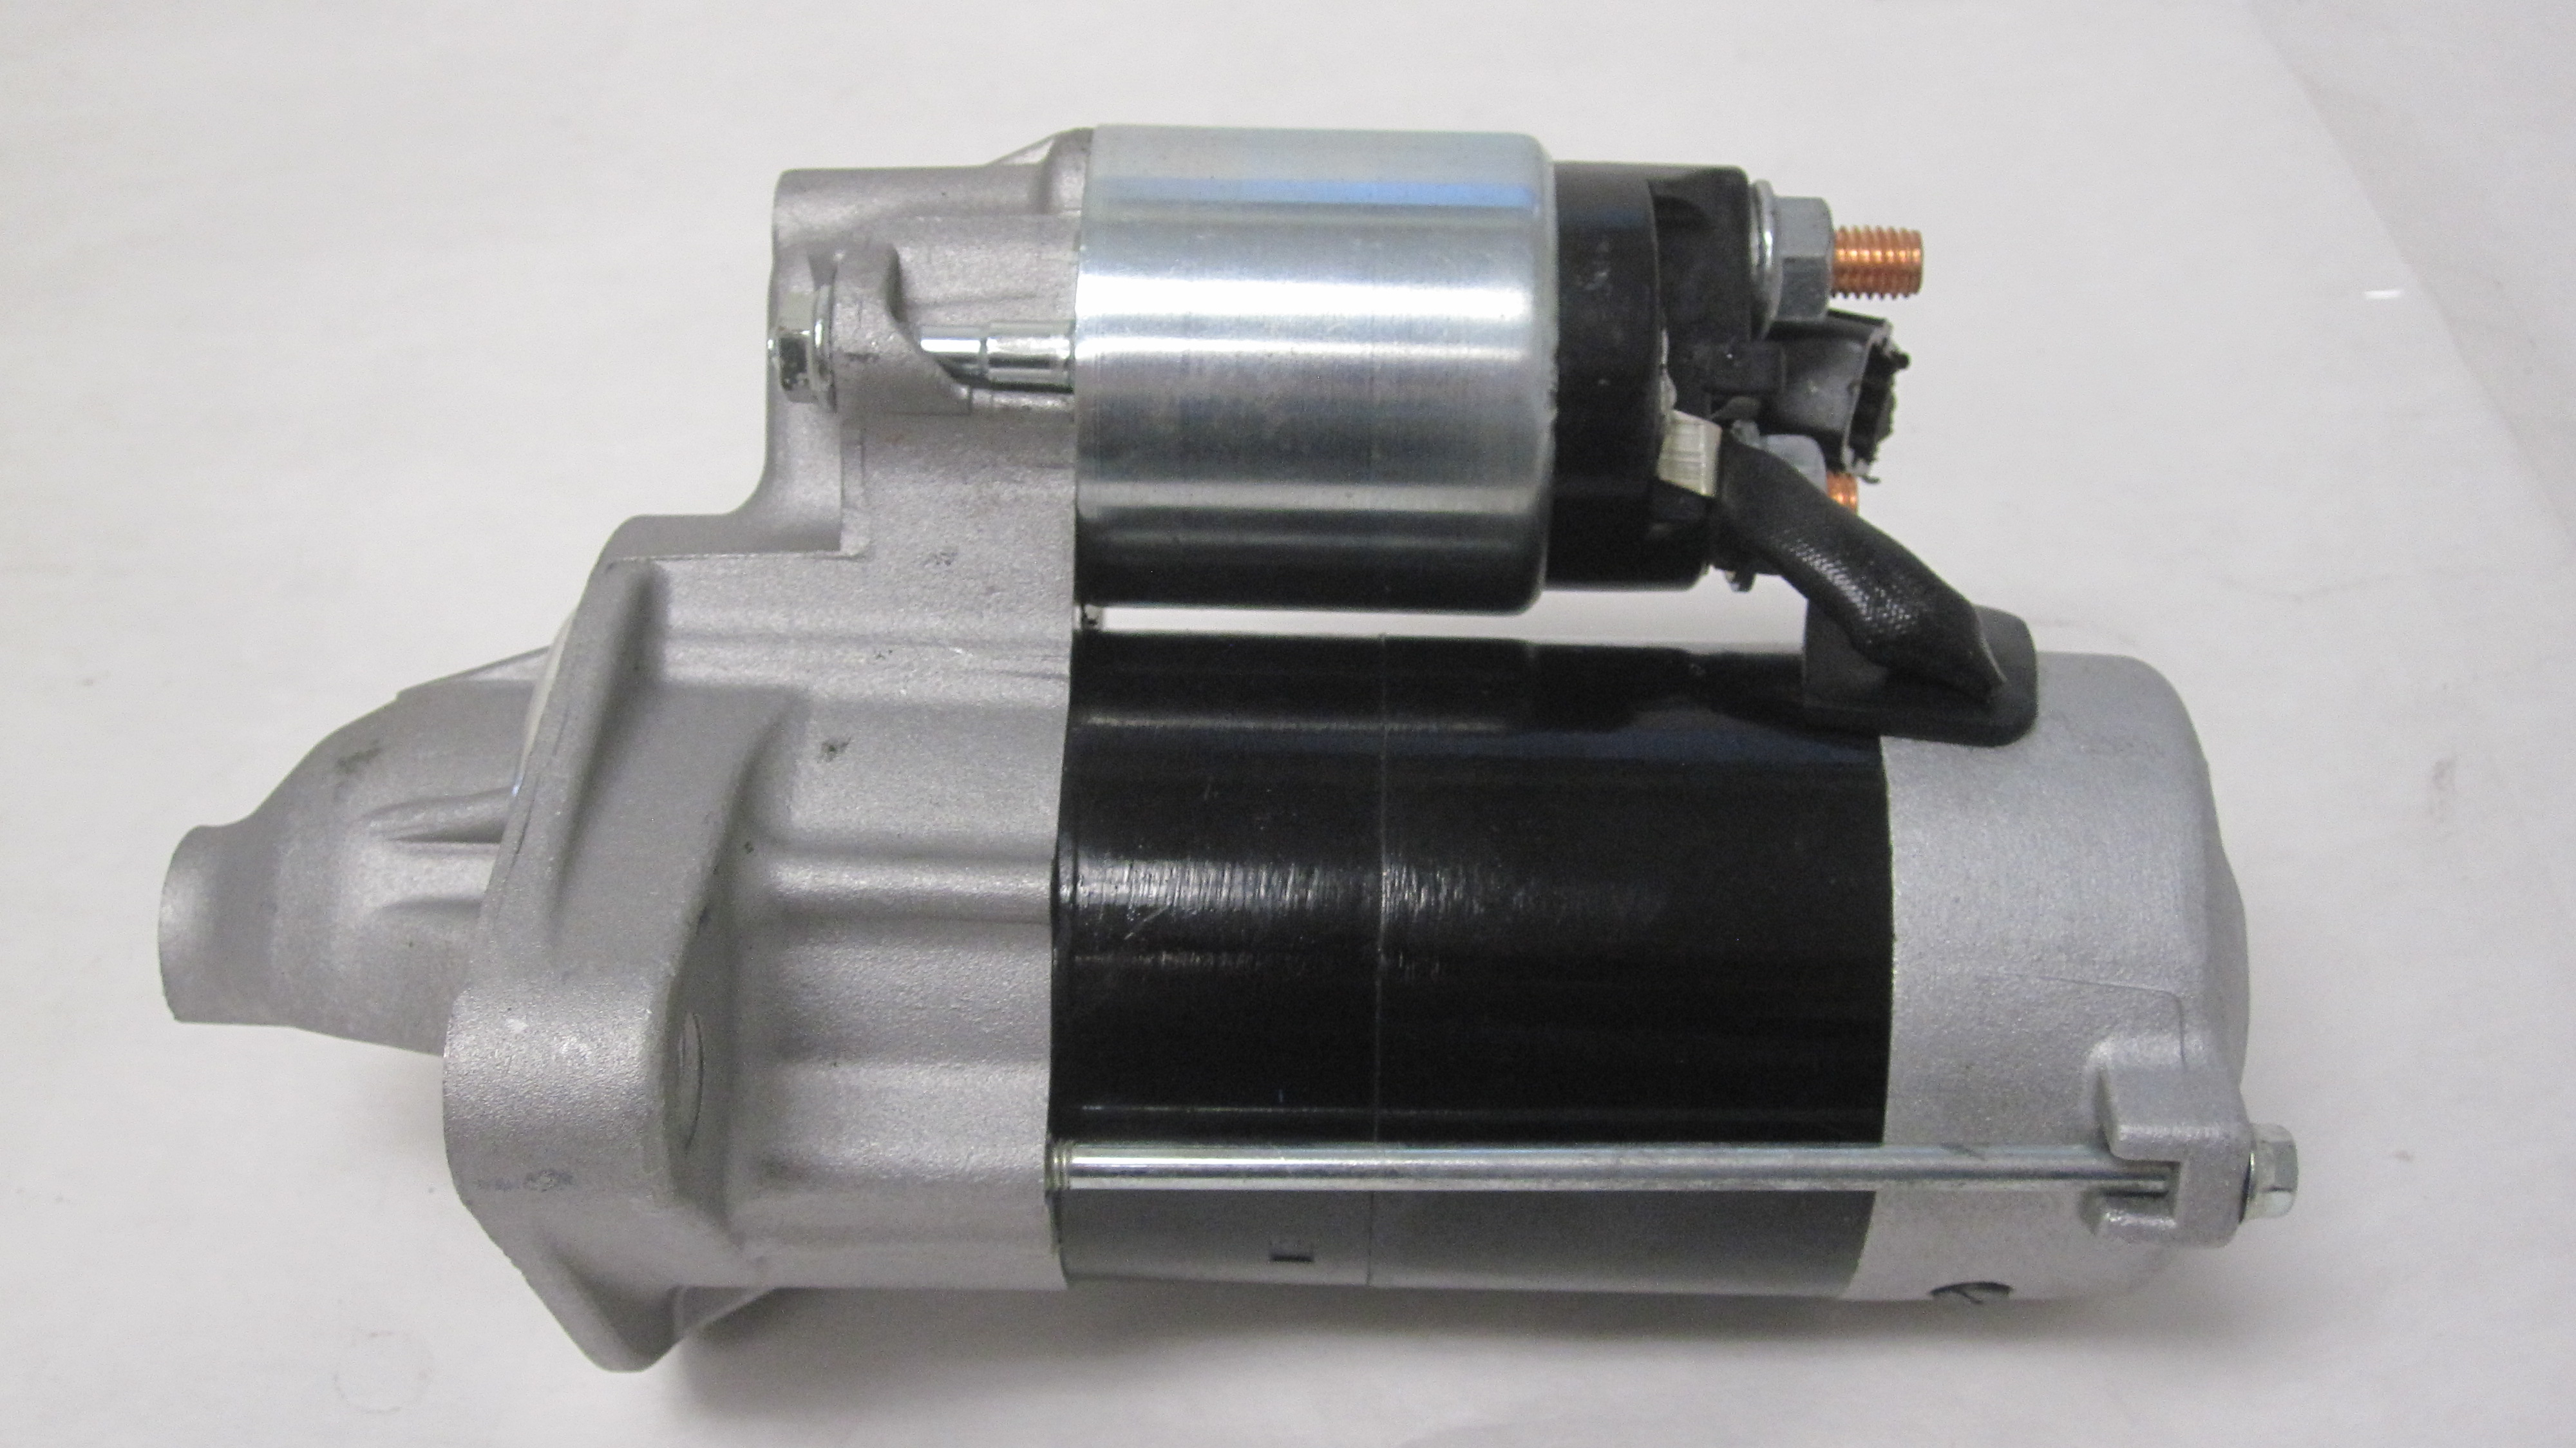 Starter for 2003-08 Pontiac Vibe, Toyota Corolla/Matrix. # 4649 | Car Parts and Accessories: Can ...